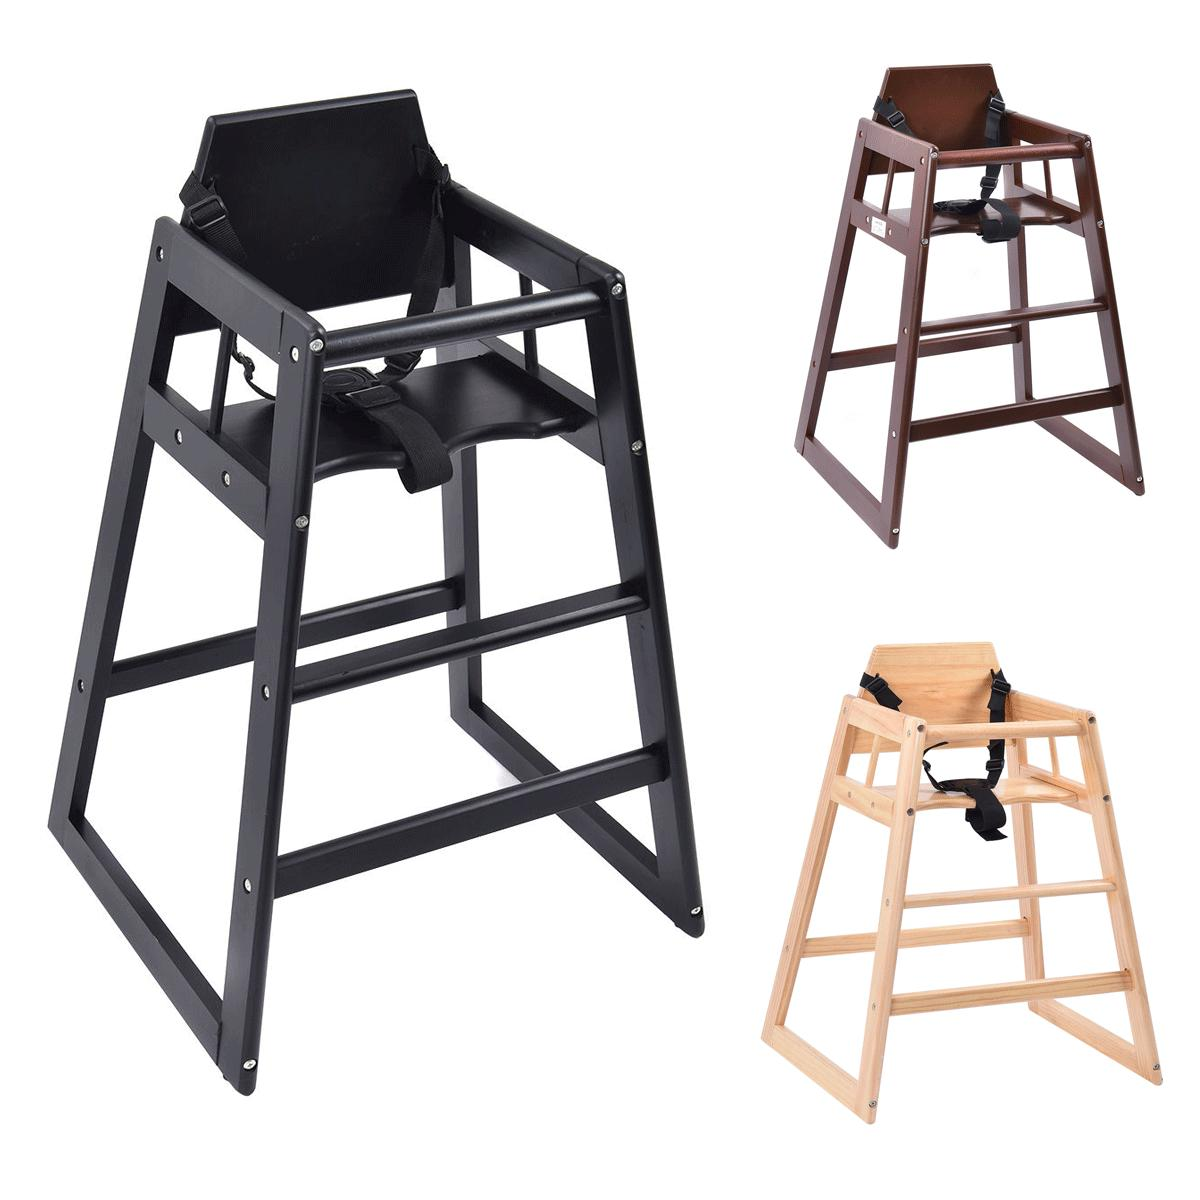 3 colors baby high chair wooden stool